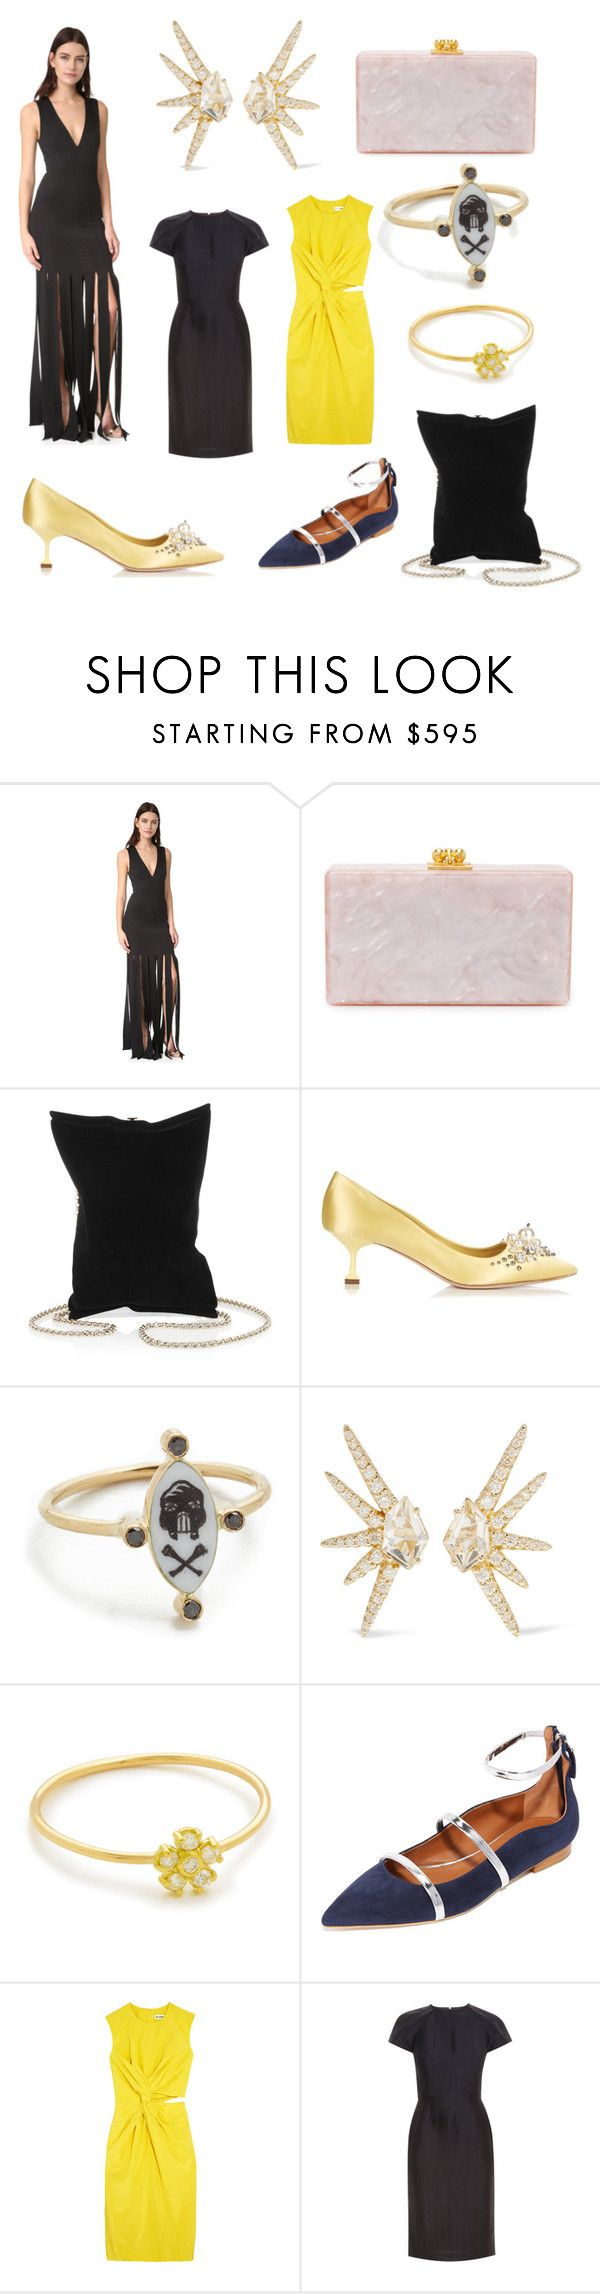 """""""Hot Sale Started...."""" by cate-jennifer on Polyvore featuring Zac Posen, Edie Parker, Anya Hindmarch, Miu Miu, Holly Dyment, Alexis Bittar, Jennifer Meyer Jewelry, Malone Souliers, Jil Sander and Martin Grant"""